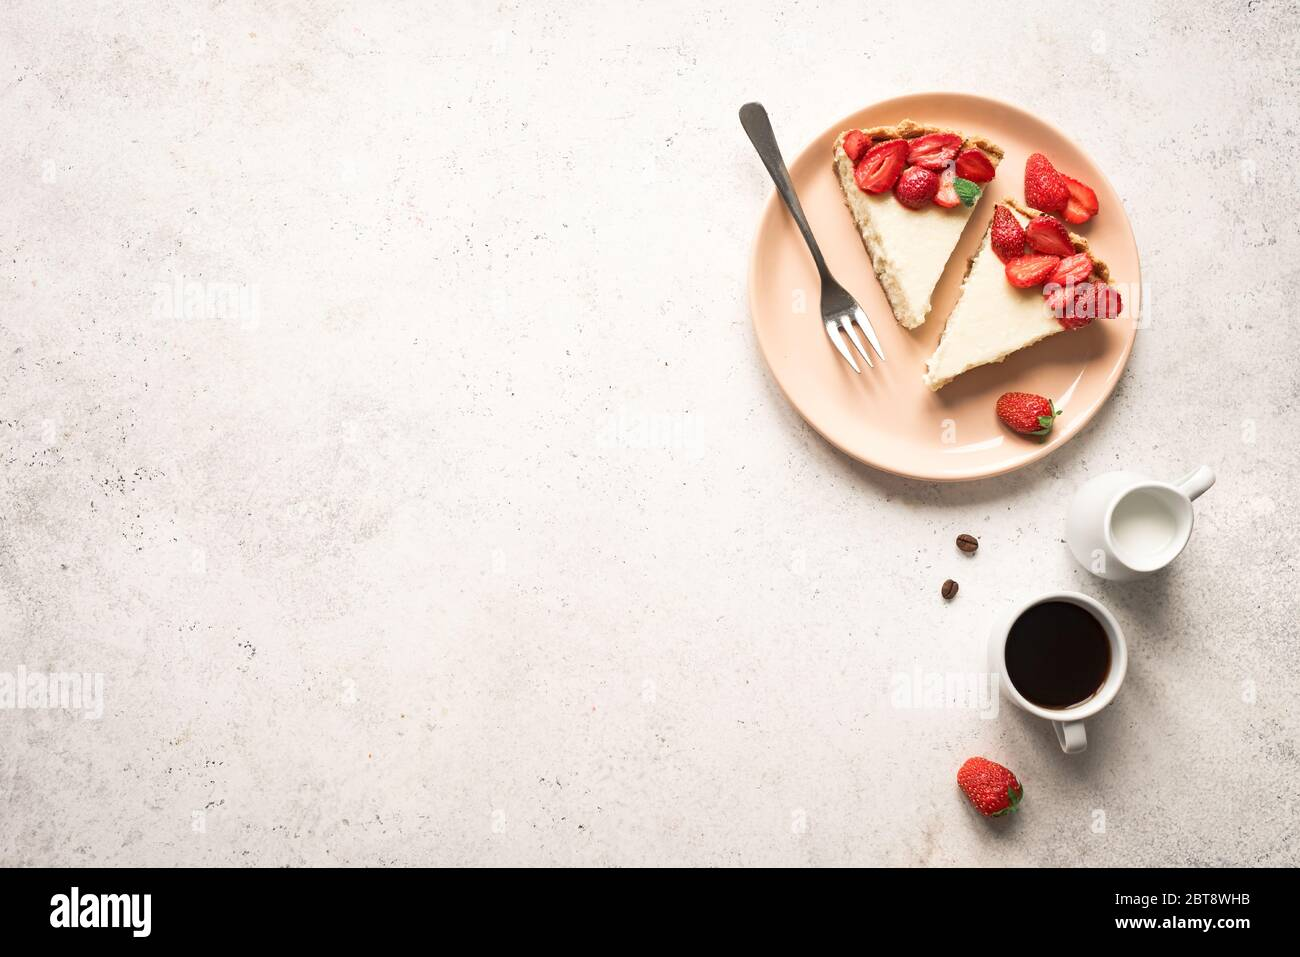 Cheesecake with strawberries on plate, top view, copy space. Slice of homemade cheese cake and sauteed berries, delicious desert. Stock Photo